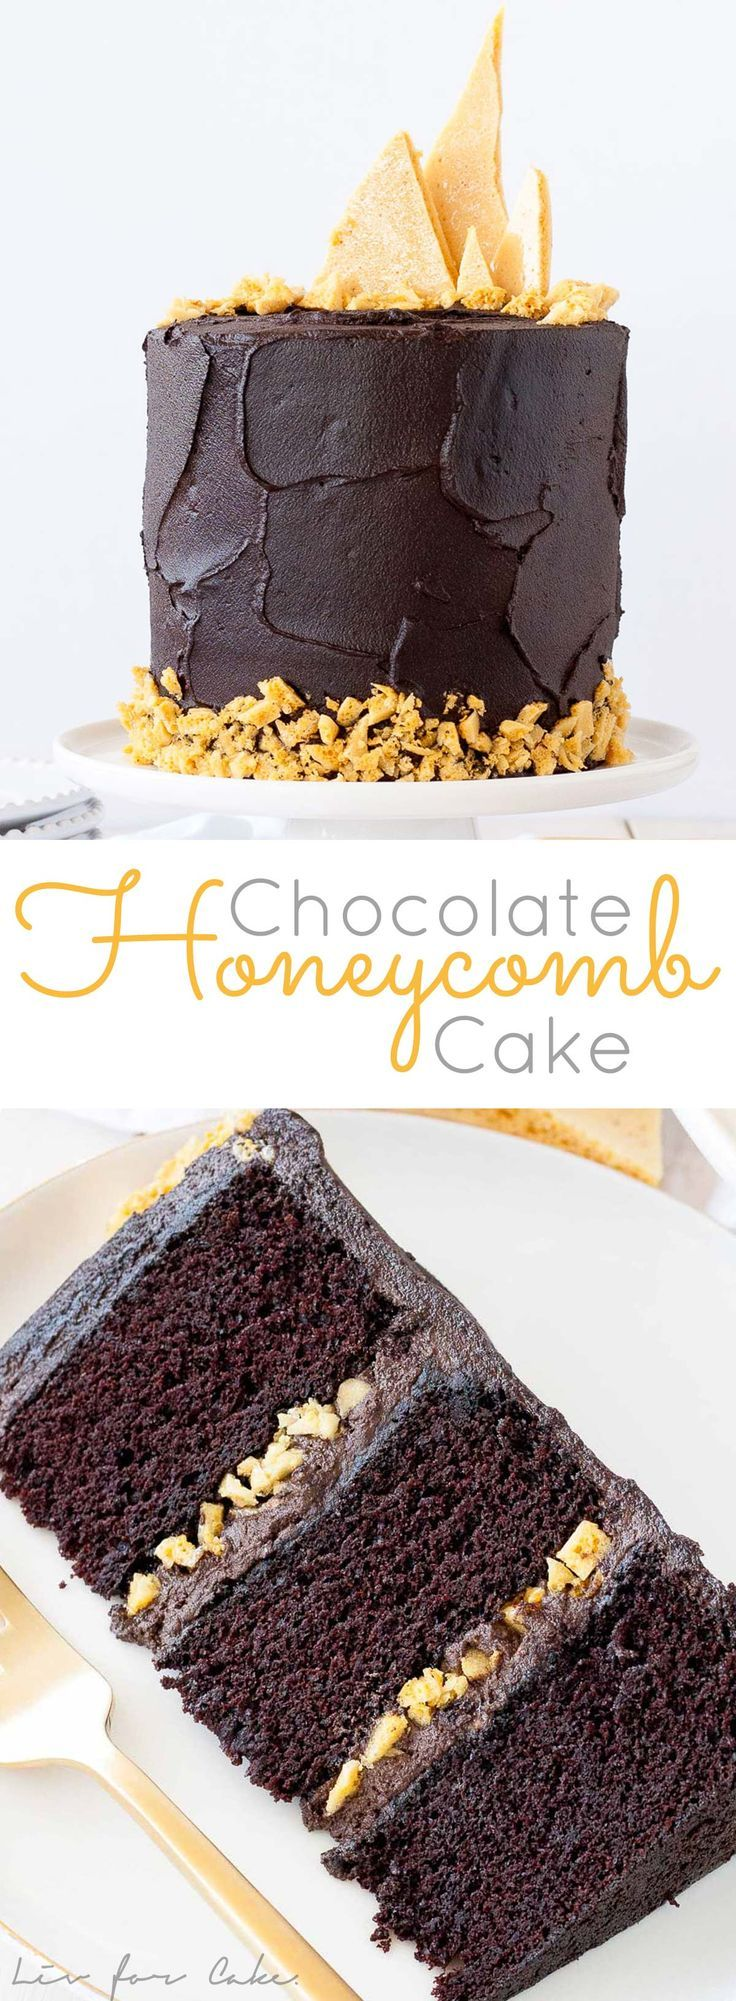 The ultimate dark chocolate cake, layered with a rich fudge frosting and homemade honeycomb.   http://livforcake.com